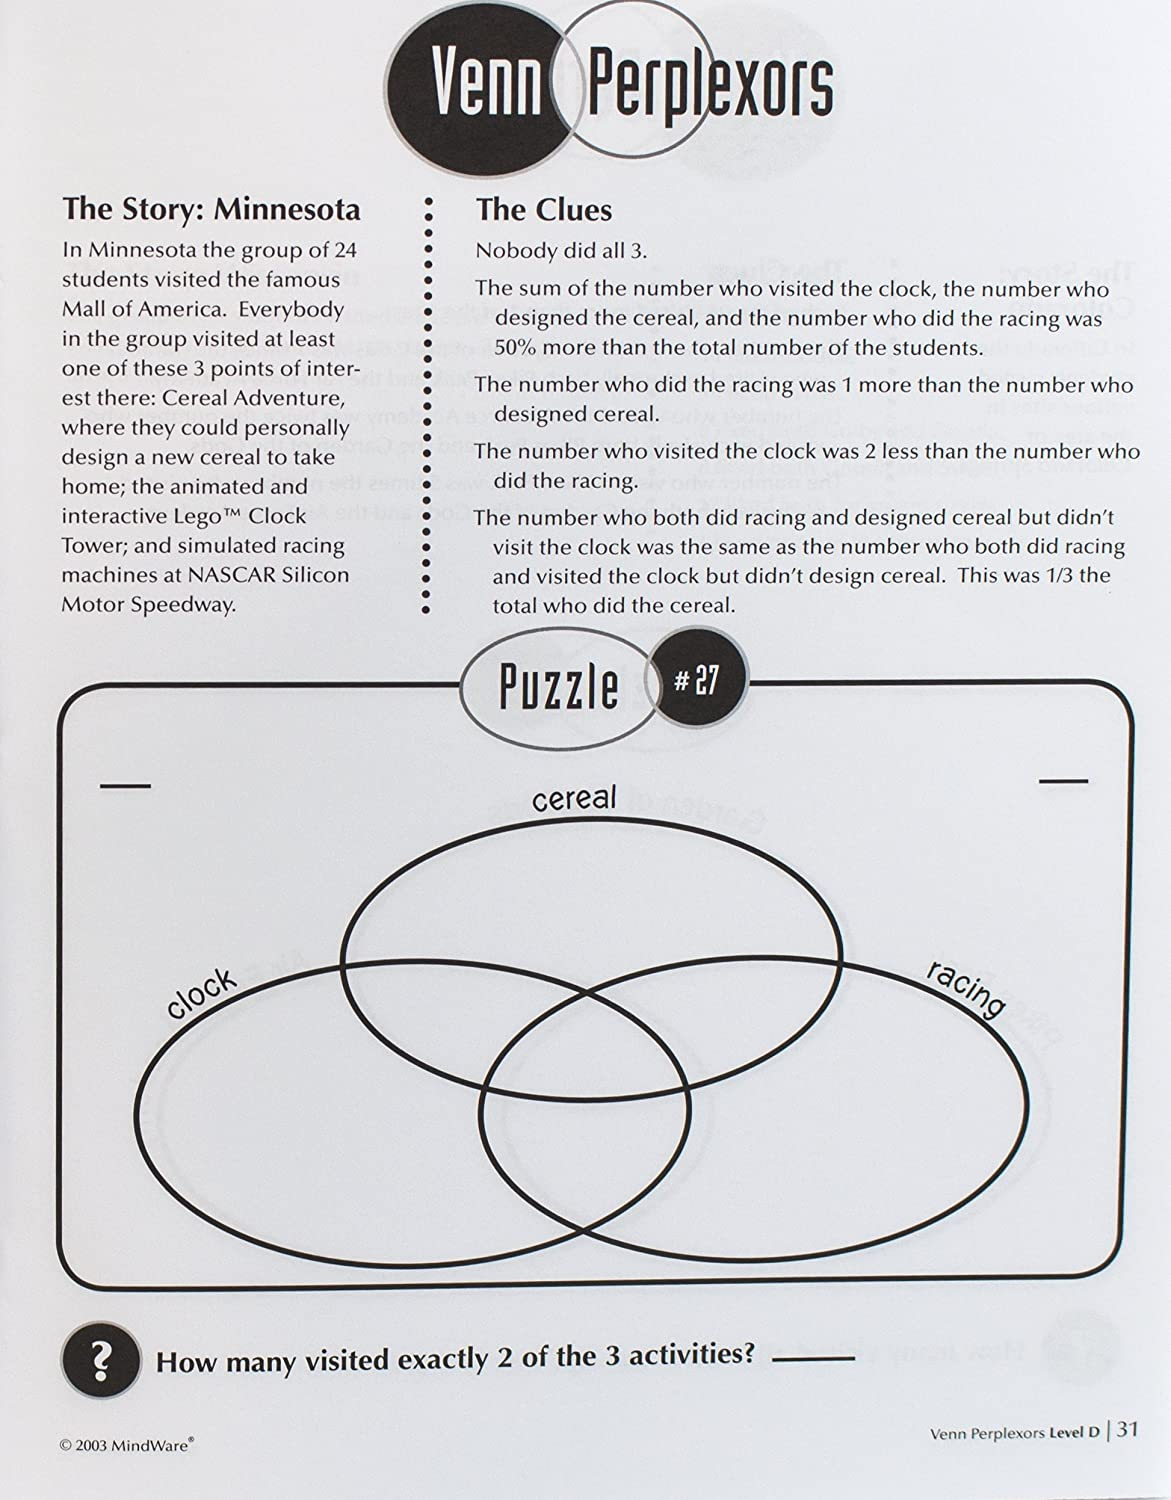 Mindware Venn Perplexors Level D 48 Puzzles Great Logic Diagram For Standardized Tests Challenging And Engaging Grades 9 12 Evelyn B Christensen